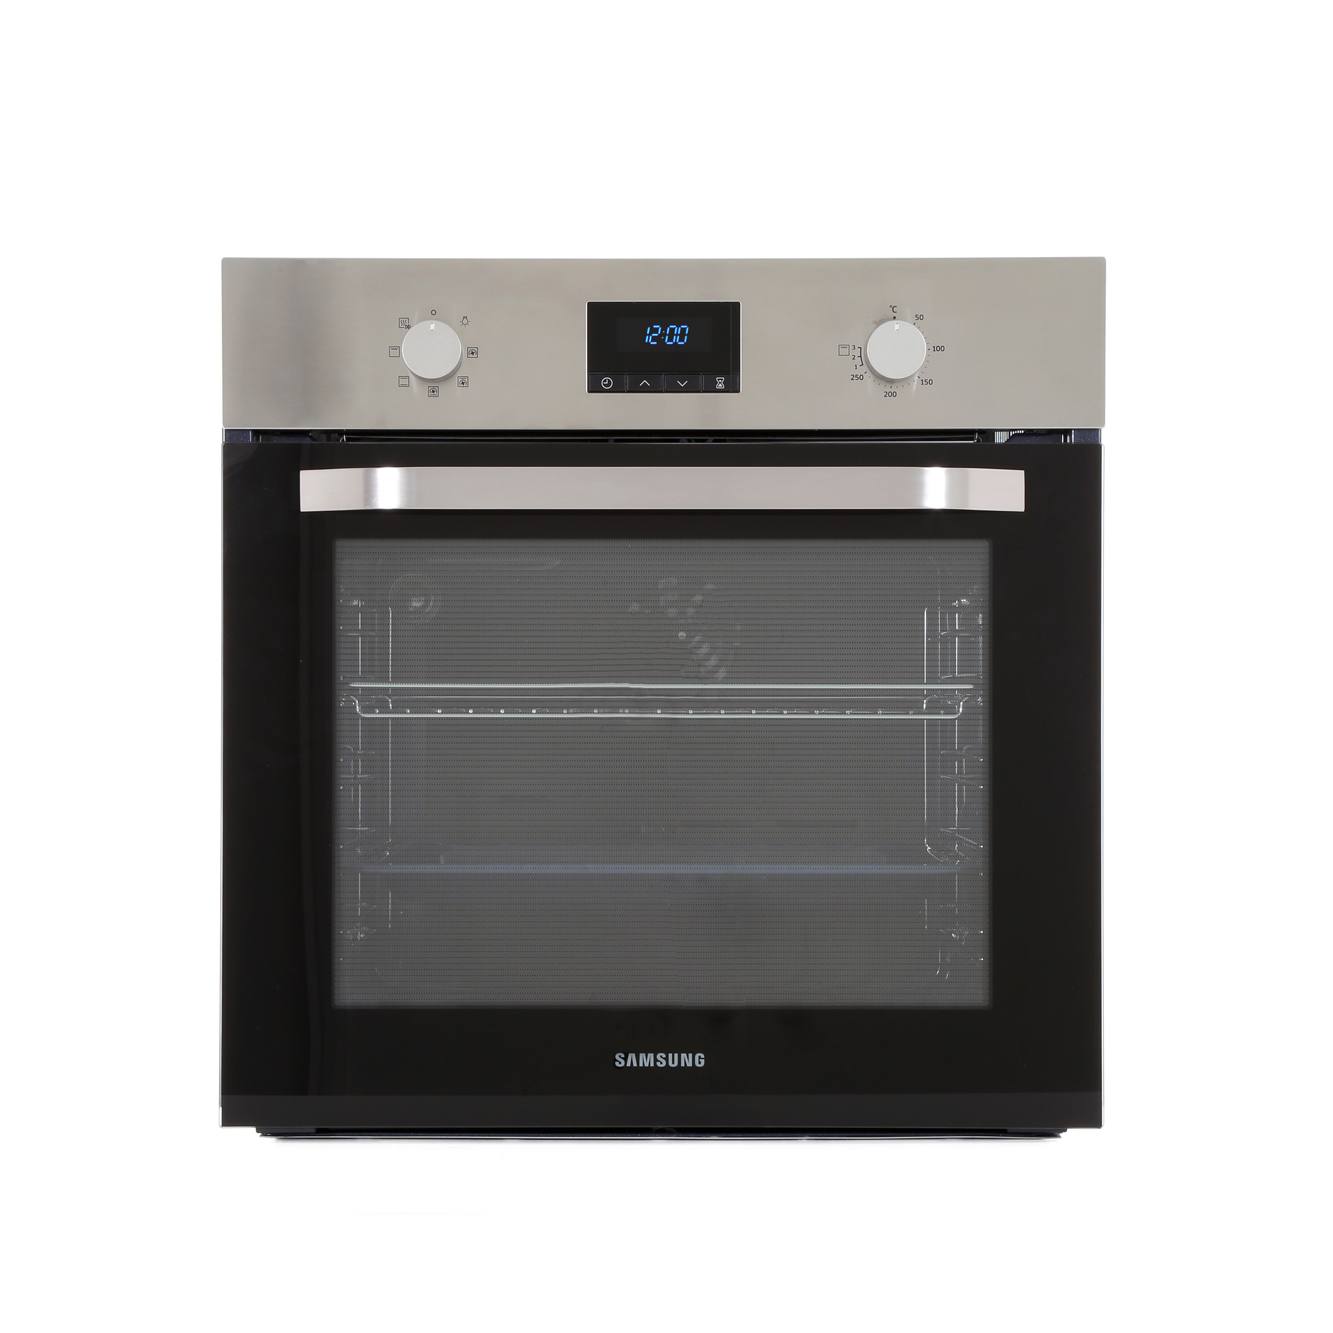 Samsung NV70K1340BS Single Built In Electric Oven